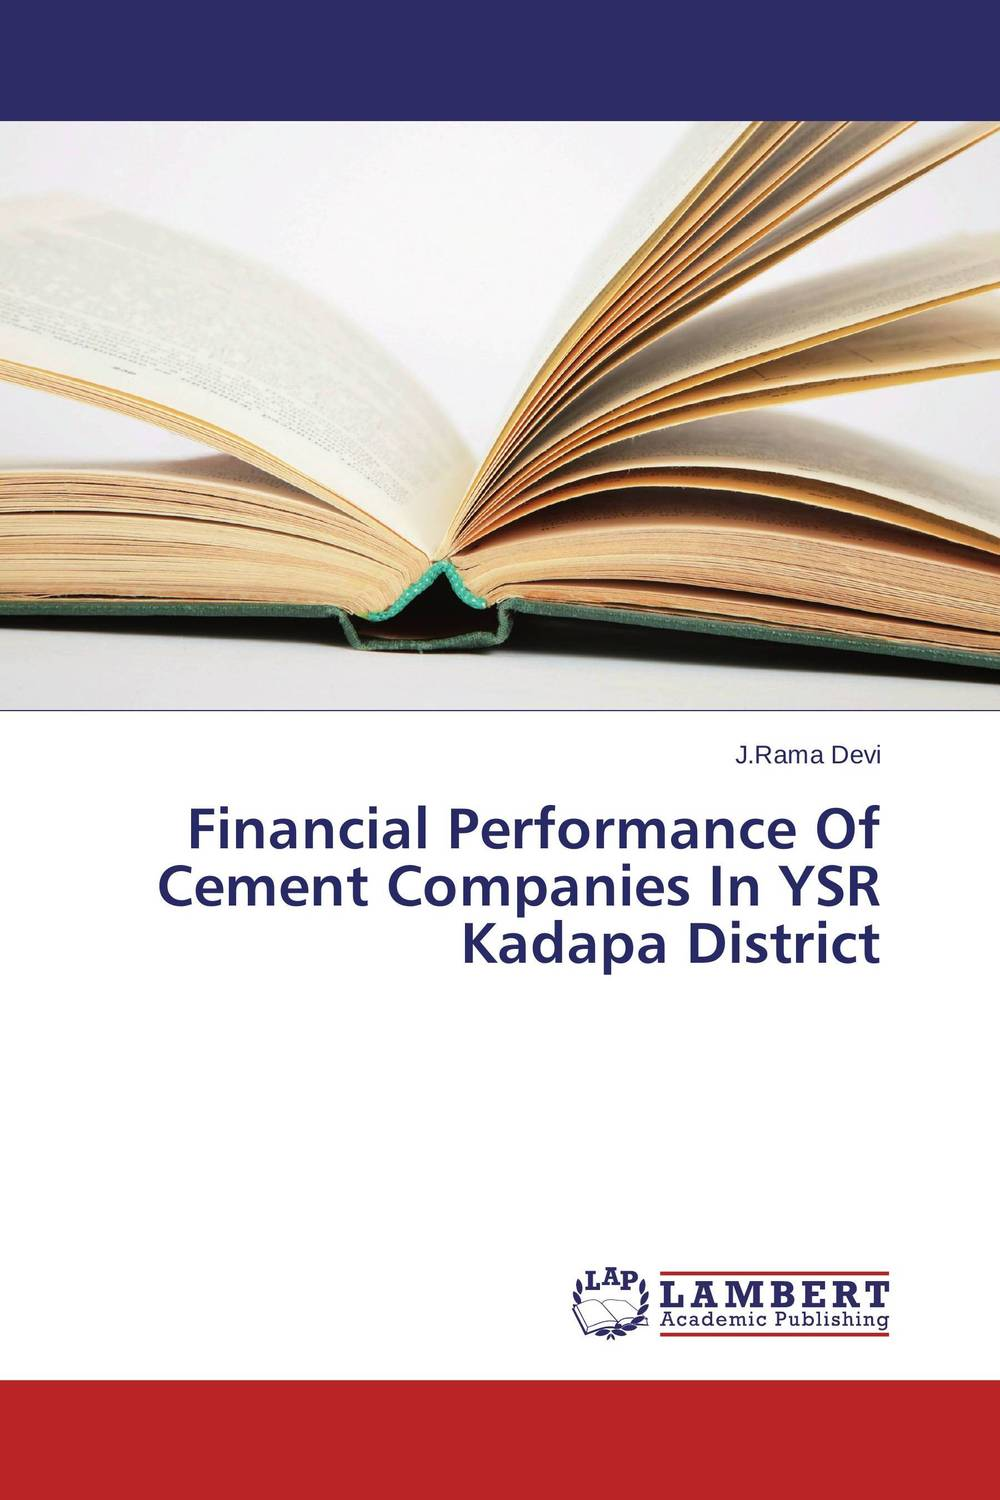 Financial Performance Of Cement Companies In YSR Kadapa District james sagner essentials of working capital management